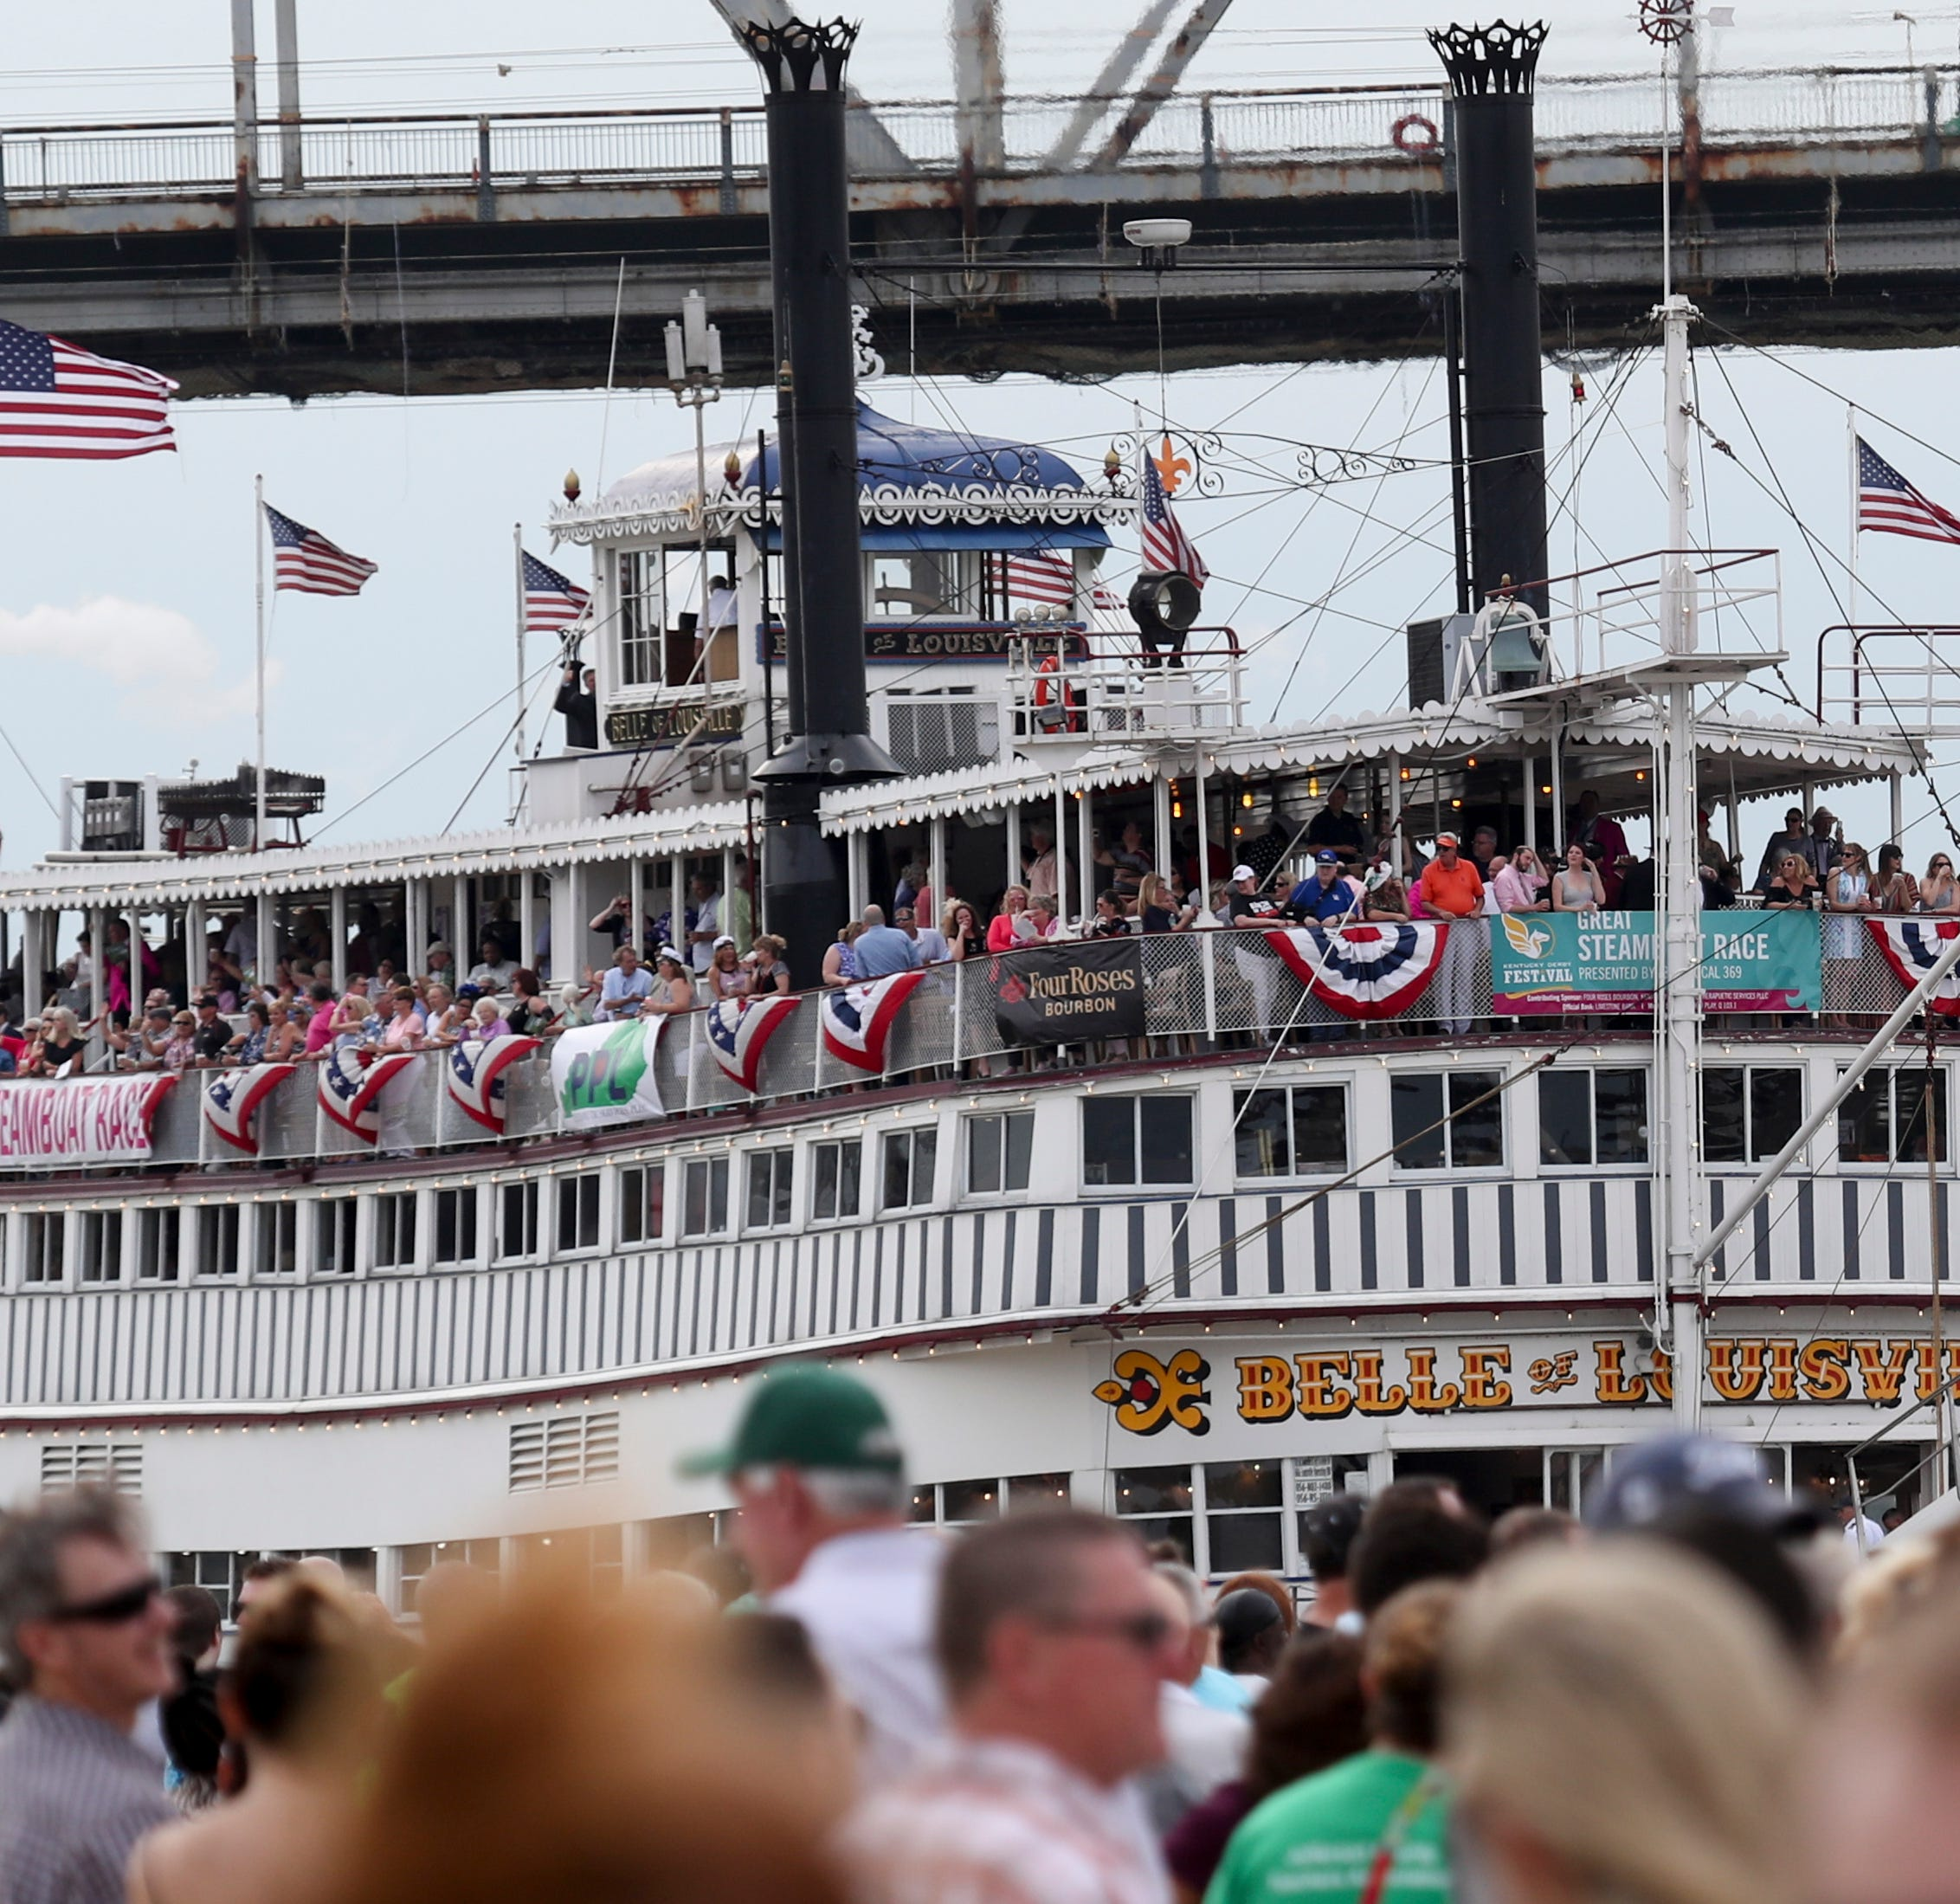 A call for rain couldn't dampen the spirit of The Great Steamboat Race